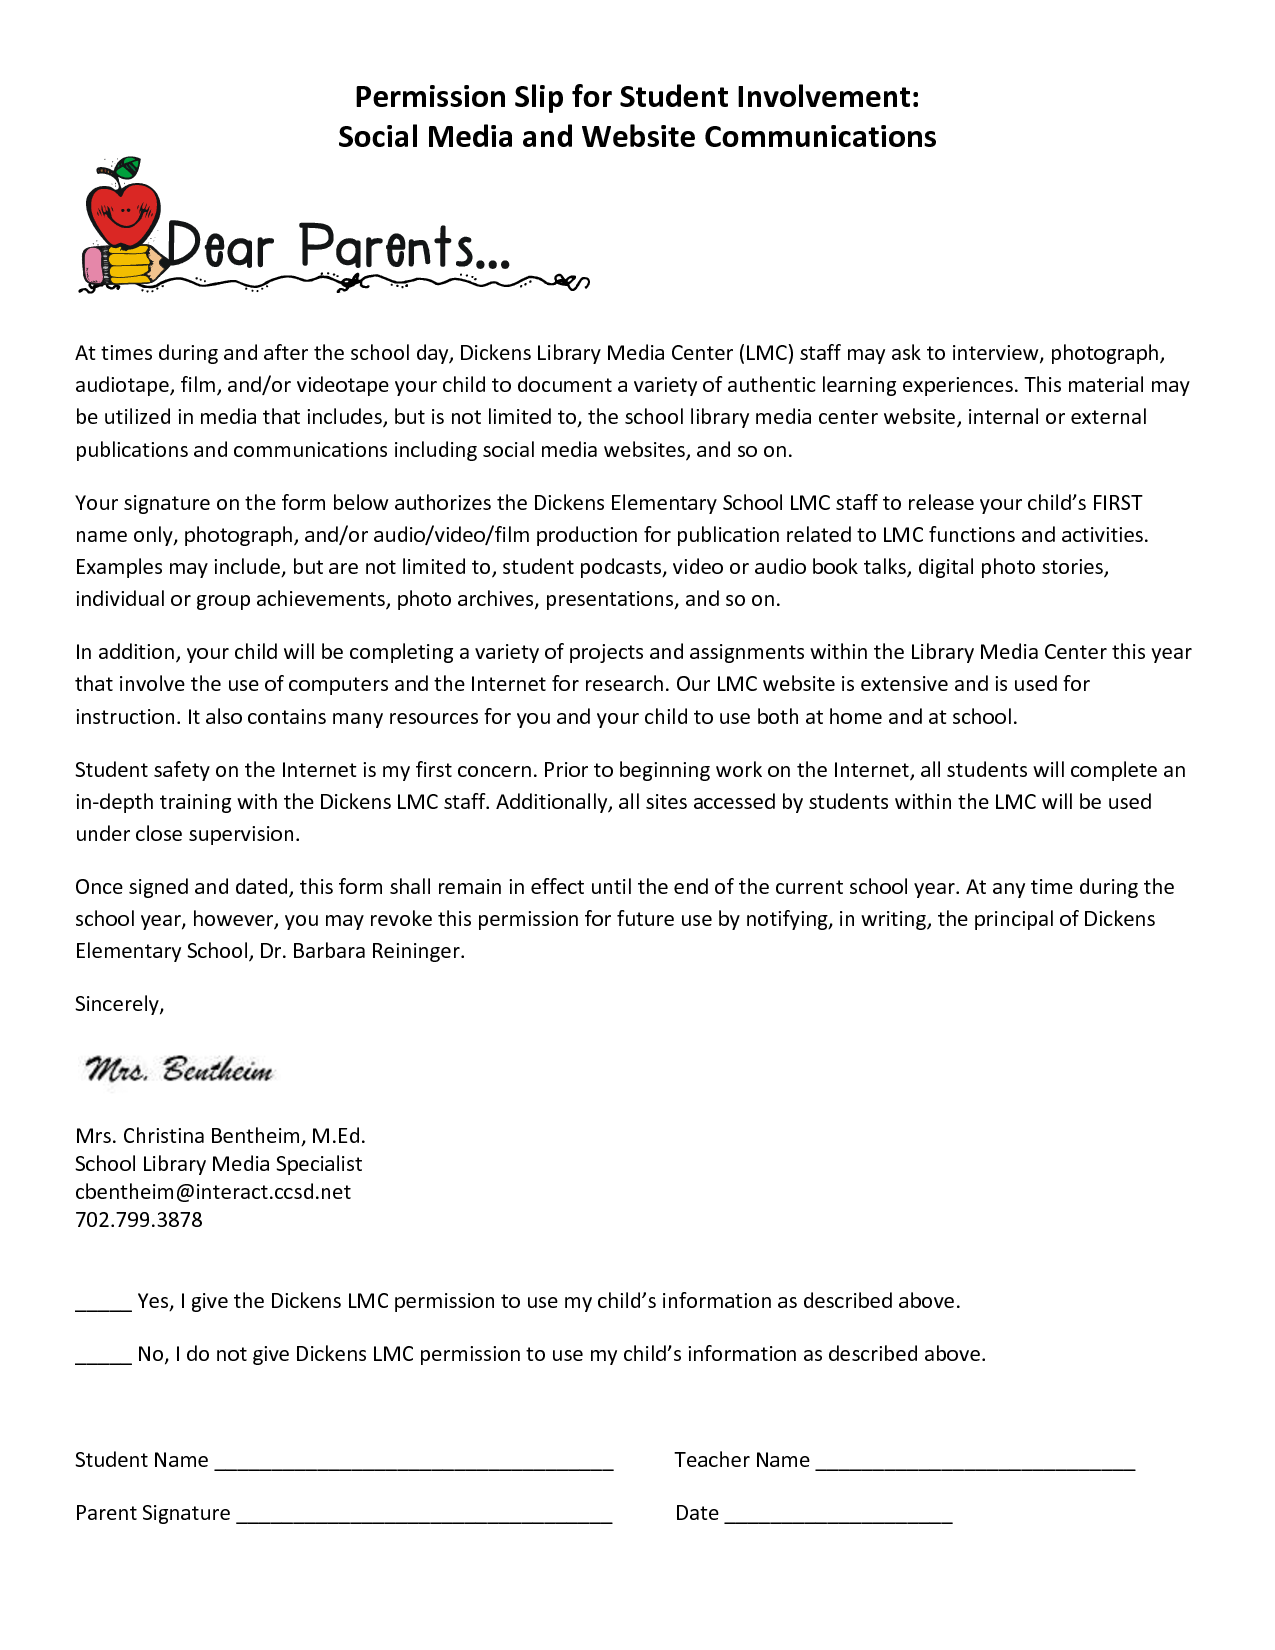 Parent Permission Slip For Social Media Needs To Be Edited To Fit The School